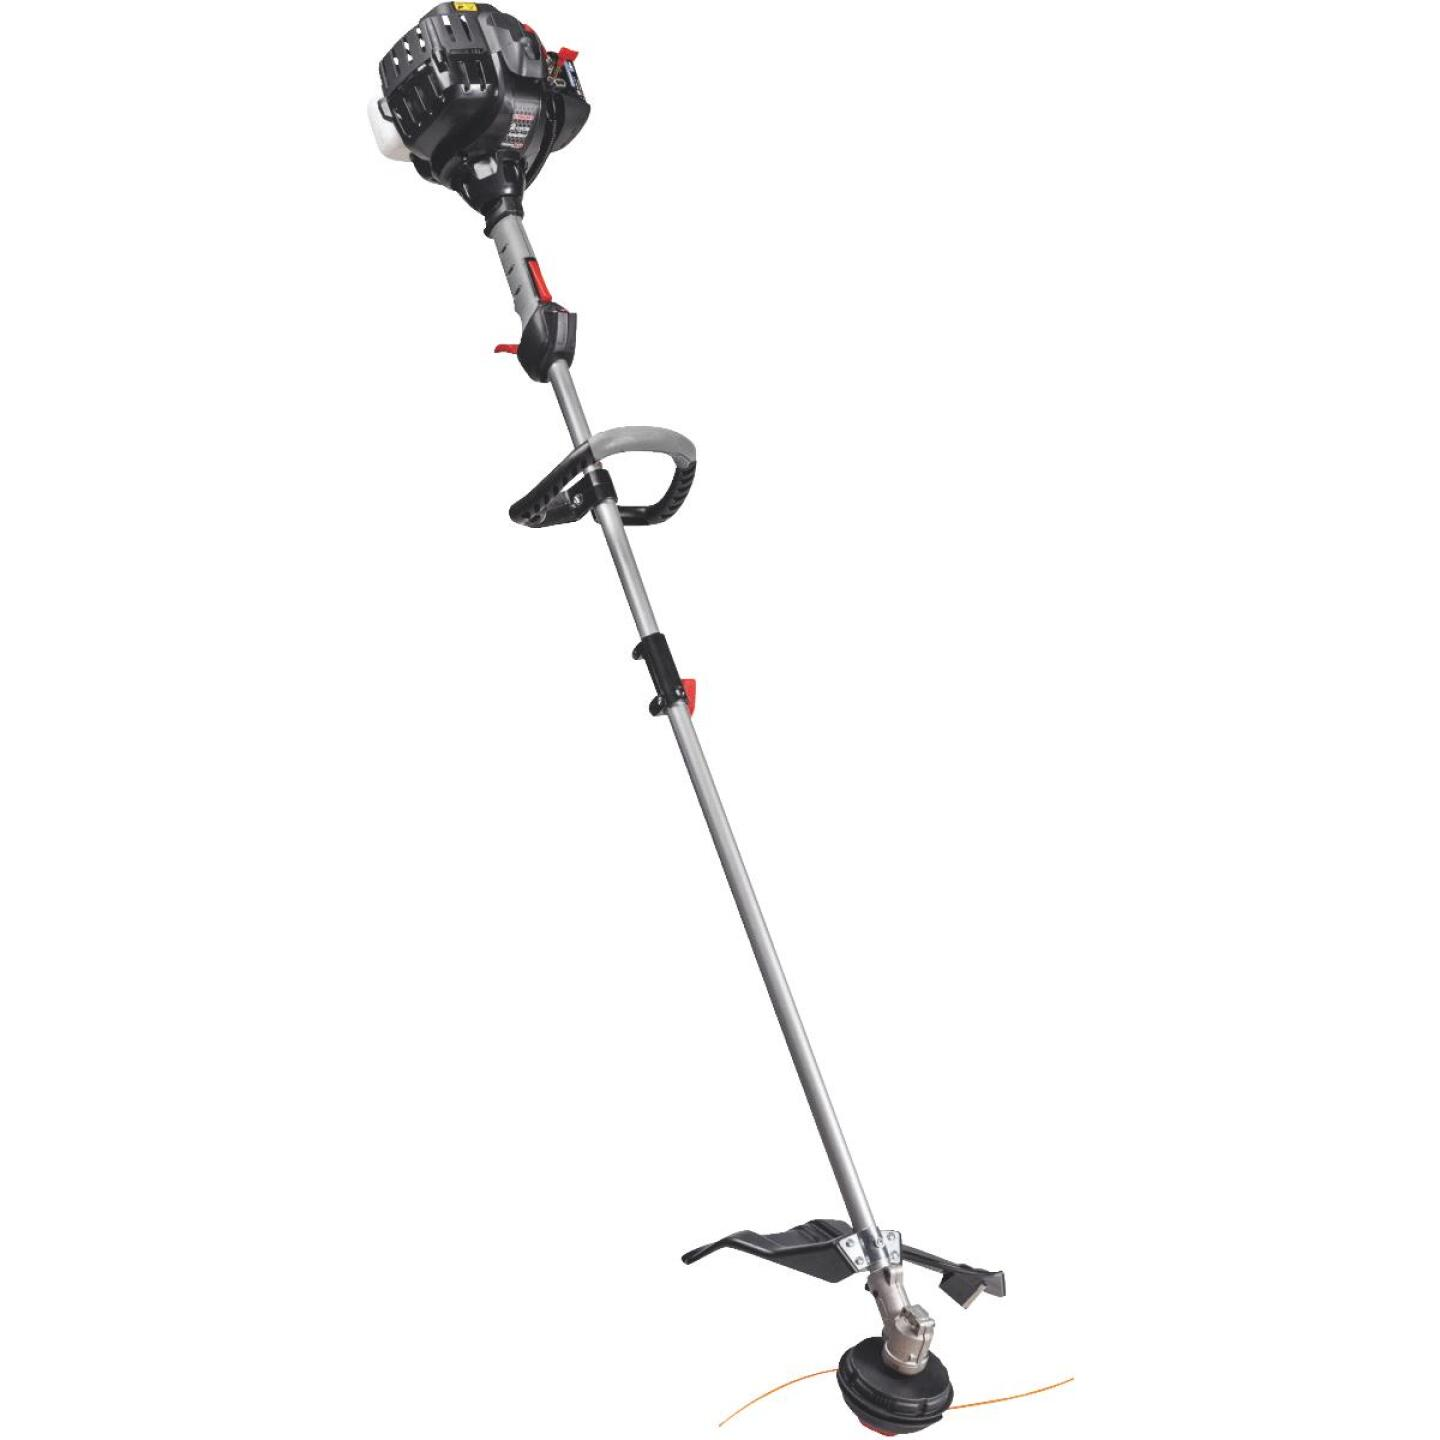 Troy-Bilt TB2044XP 18 In. 27CC 2-Cycle Straight Gas String Trimmer Image 2